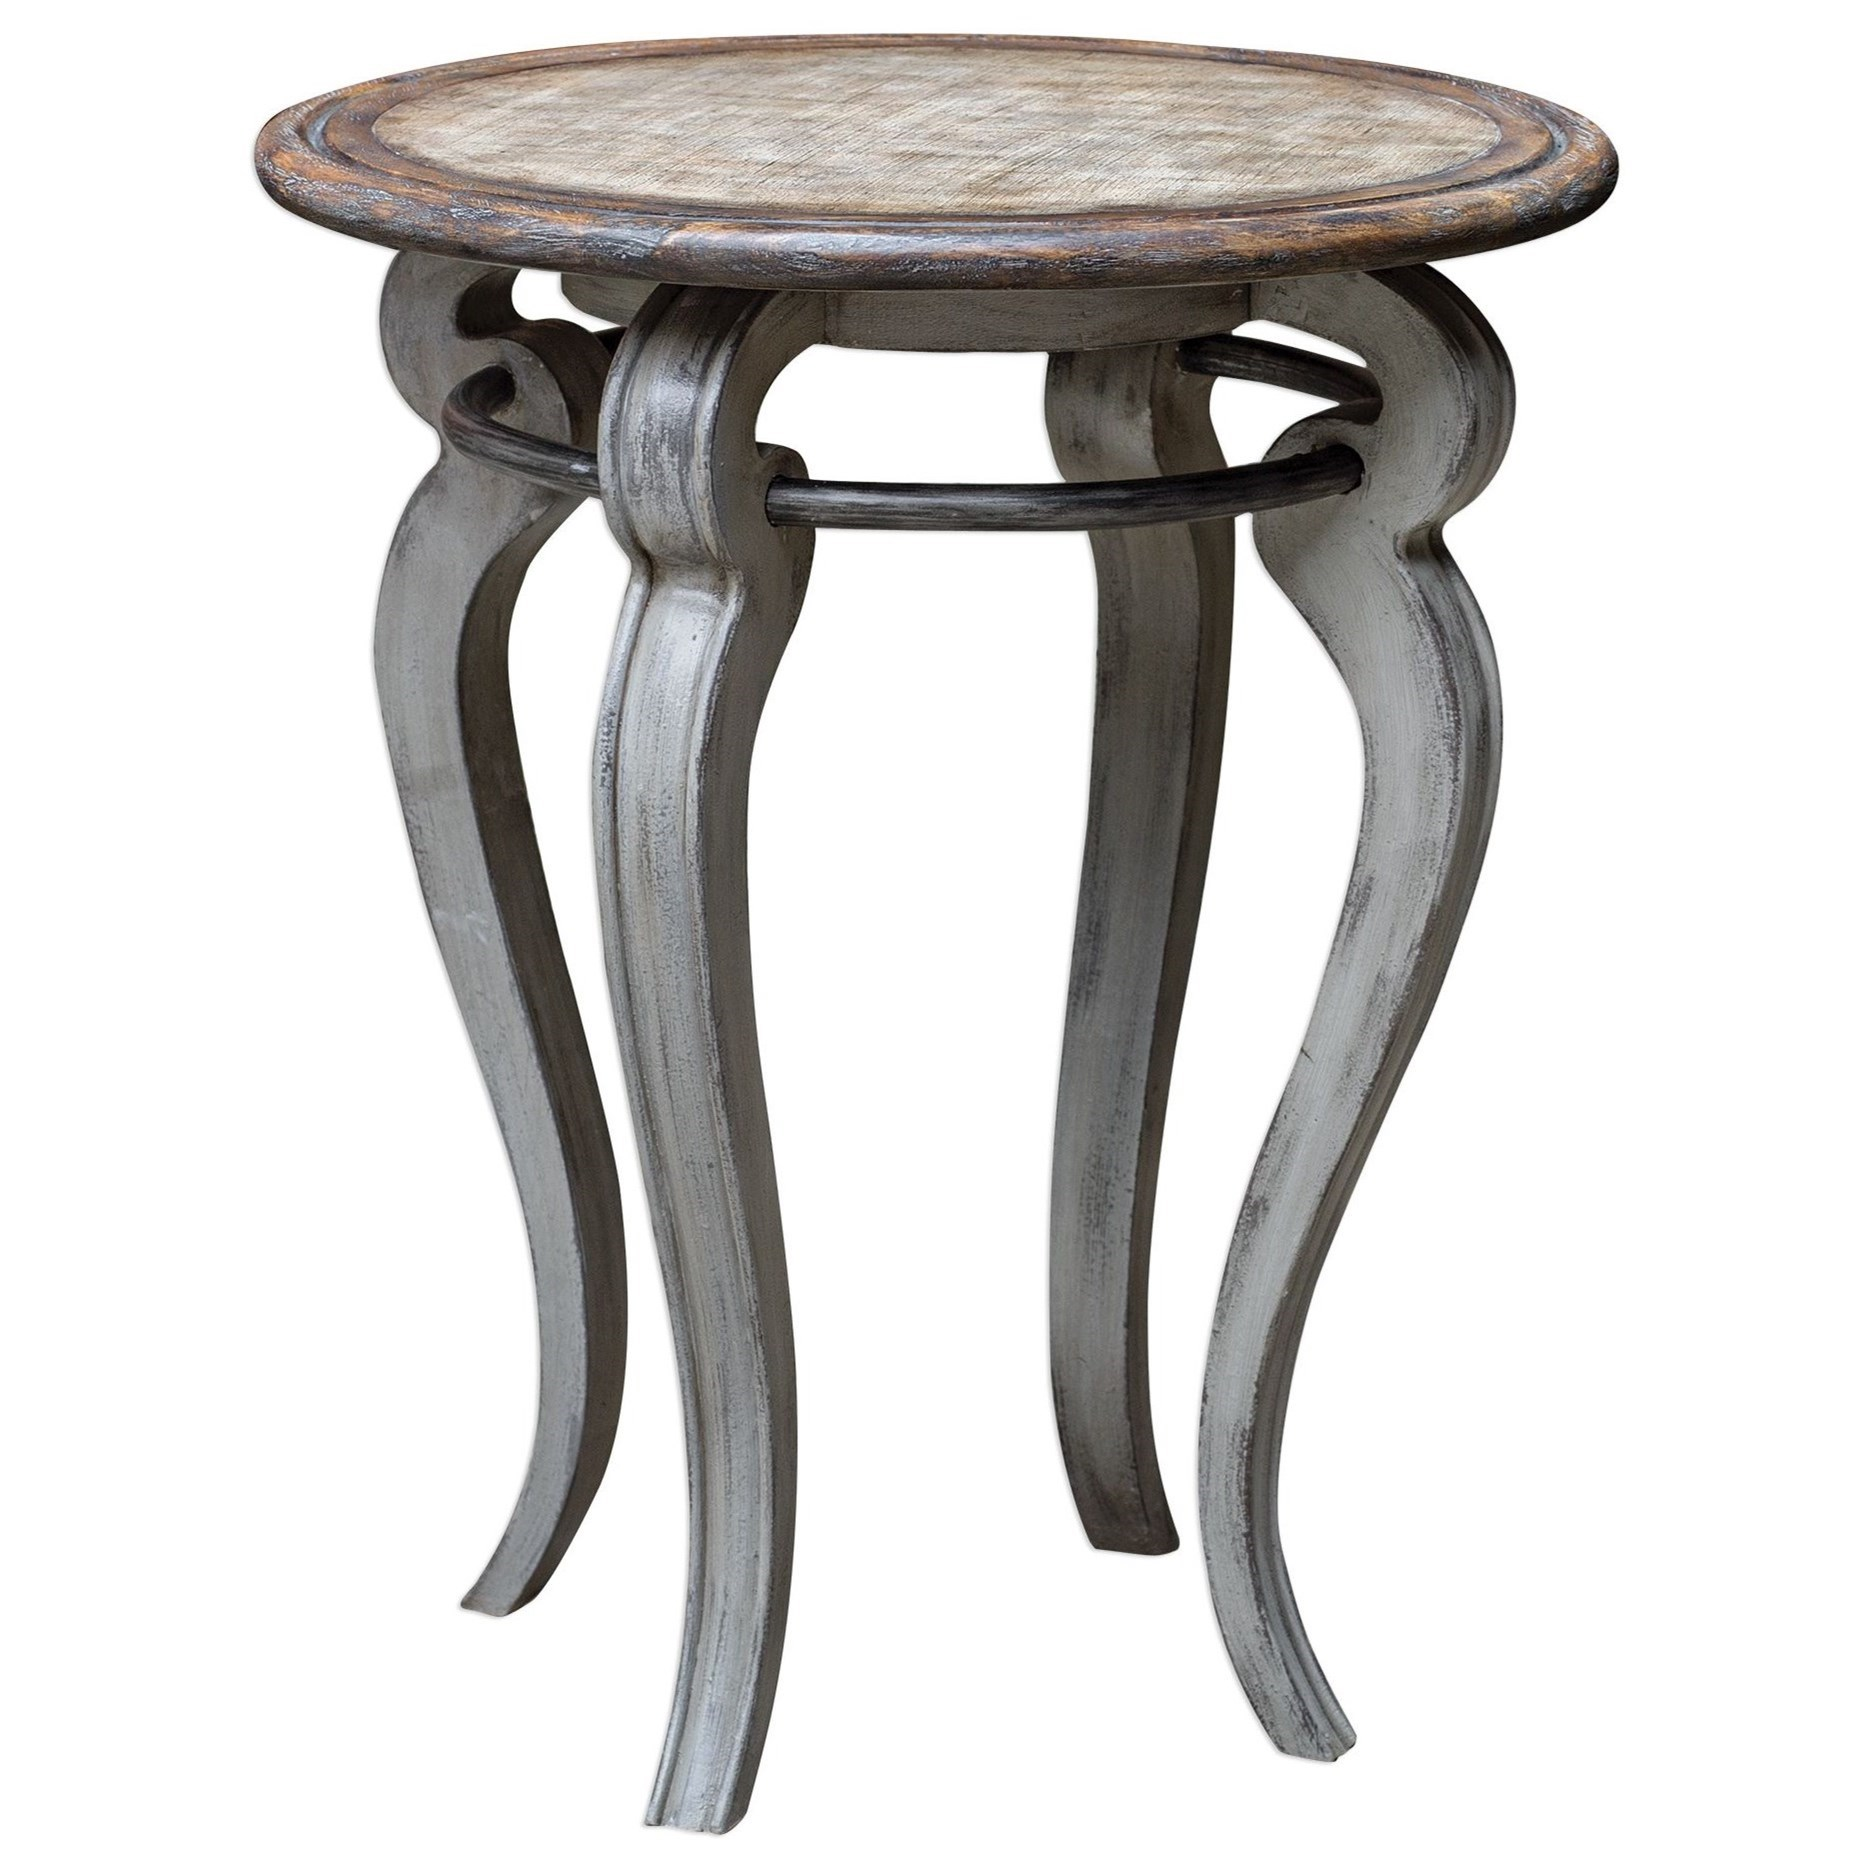 Accent Furniture - Occasional Tables Mariah Round Gray Accent Table by Uttermost at Reid's Furniture